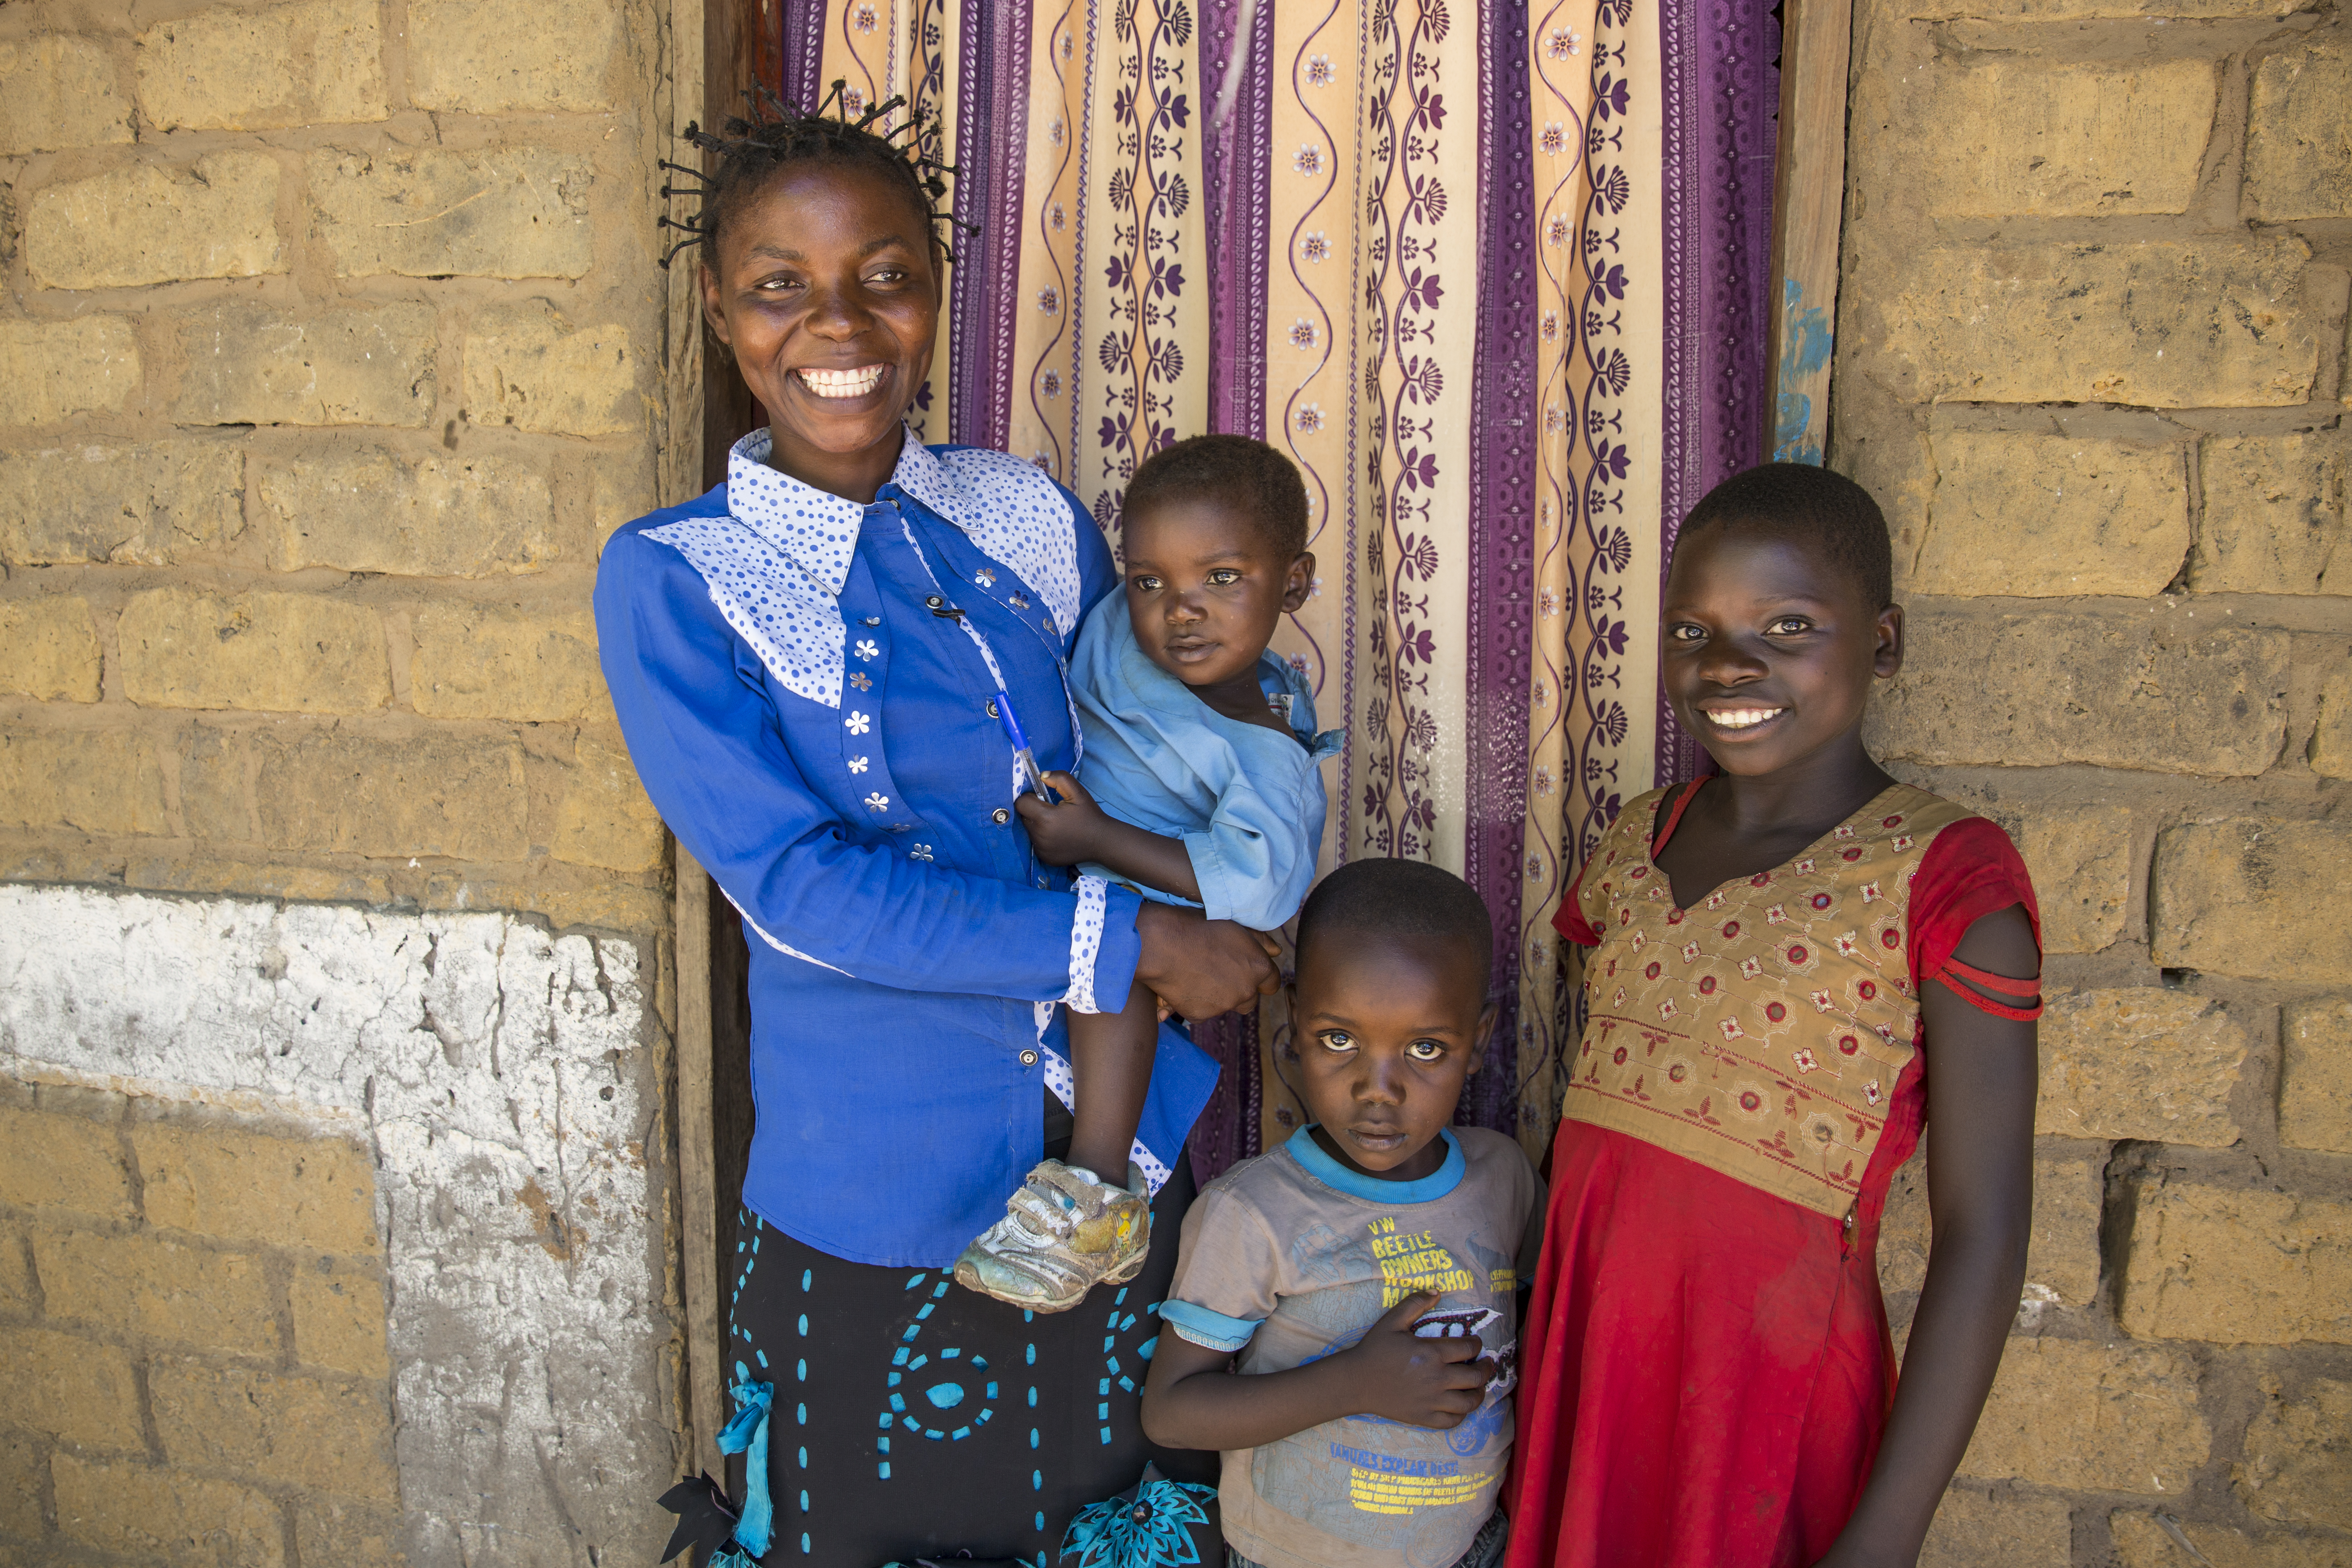 Joelle Inamulongo stands in the doorway of her home in DRC with her 3 children